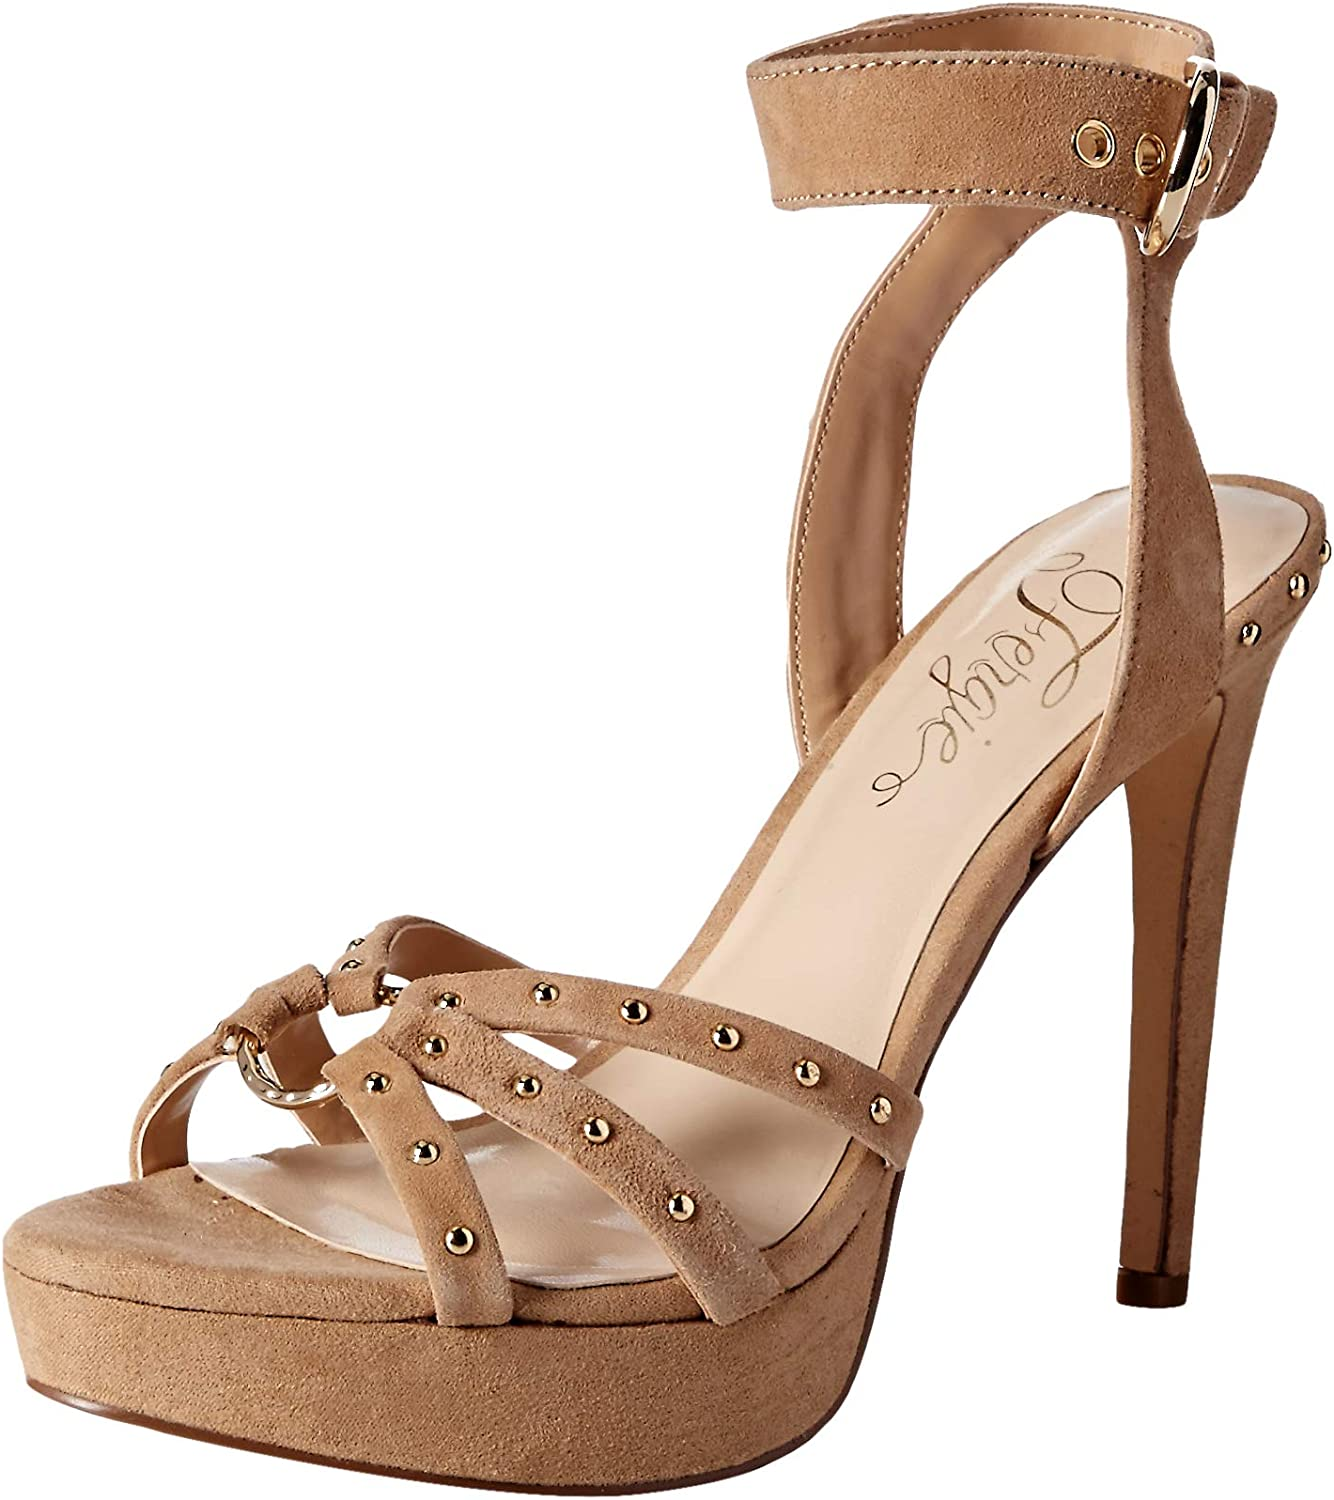 Fergie Womens Reckless Heeled Sandal